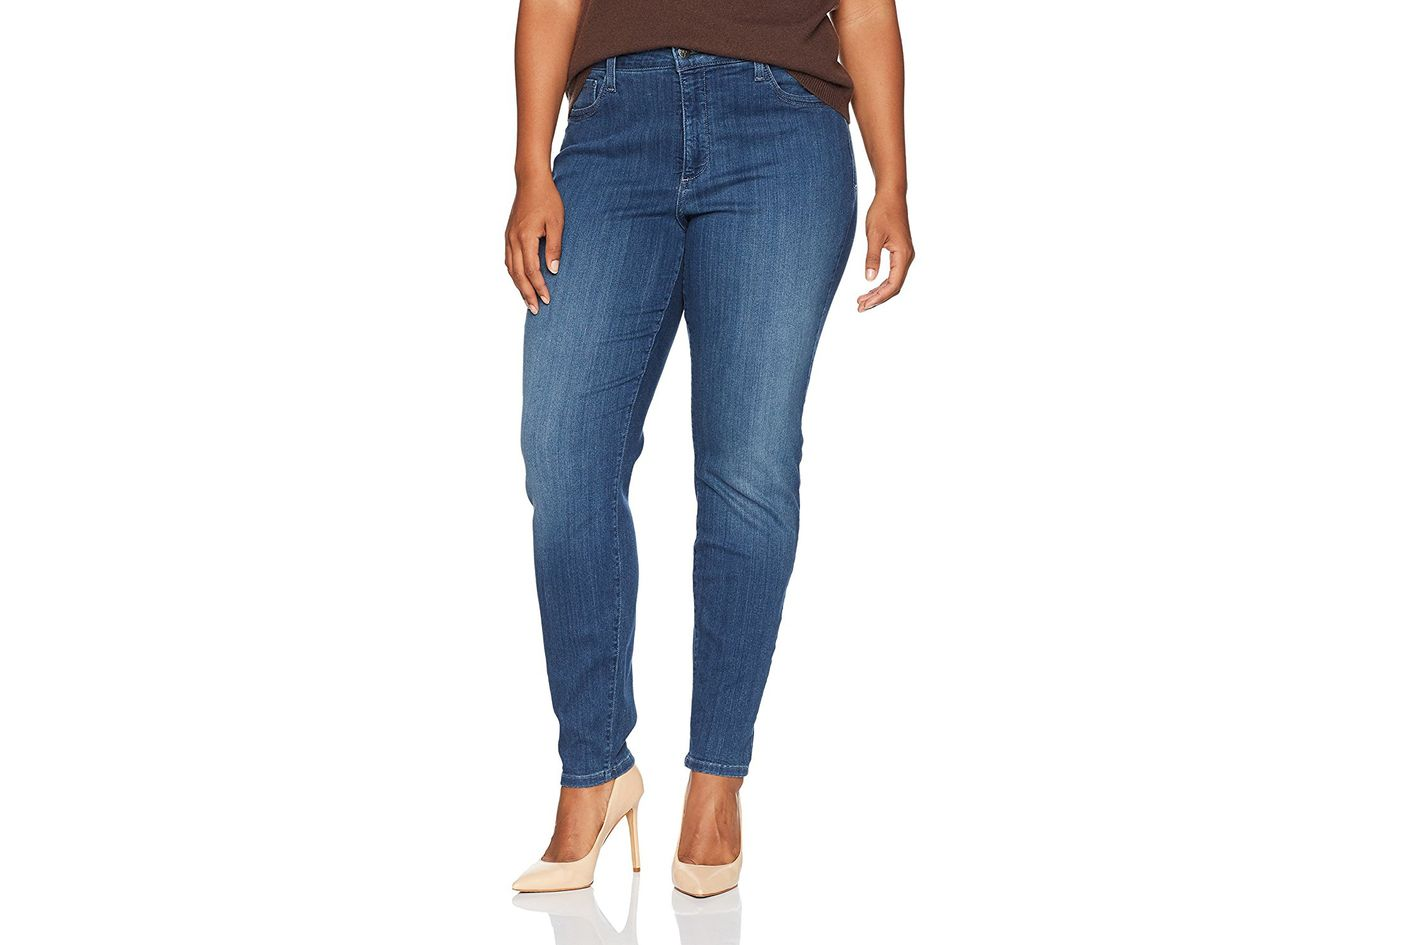 d7425d19d61 10 Best Plus-Size Jeans According to Real Women 2018